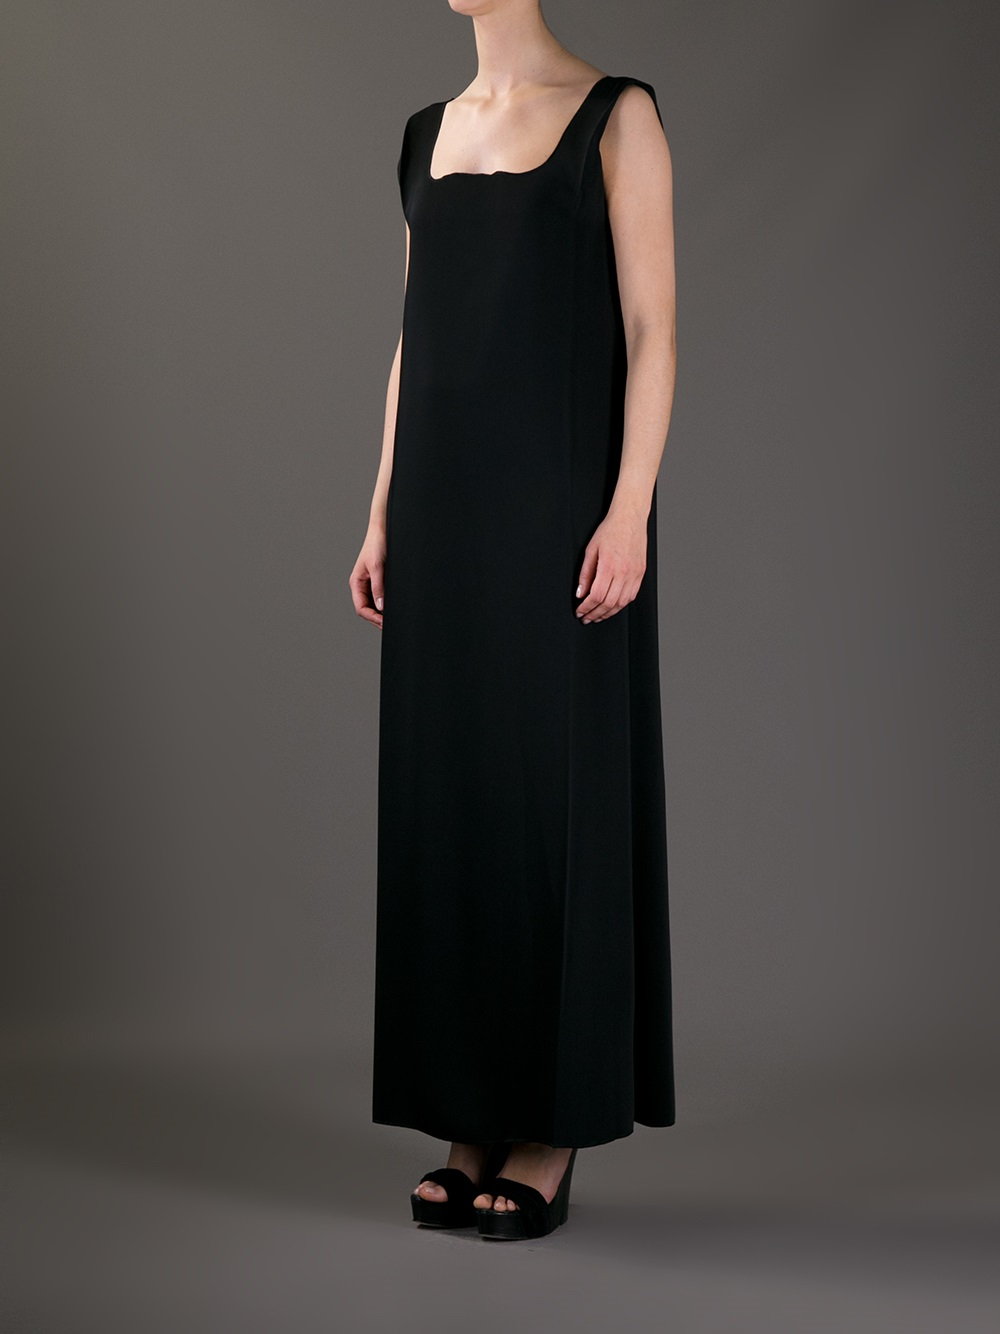 c367341307 MM6 by Maison Martin Margiela Square Neck Maxi Dress in Black - Lyst